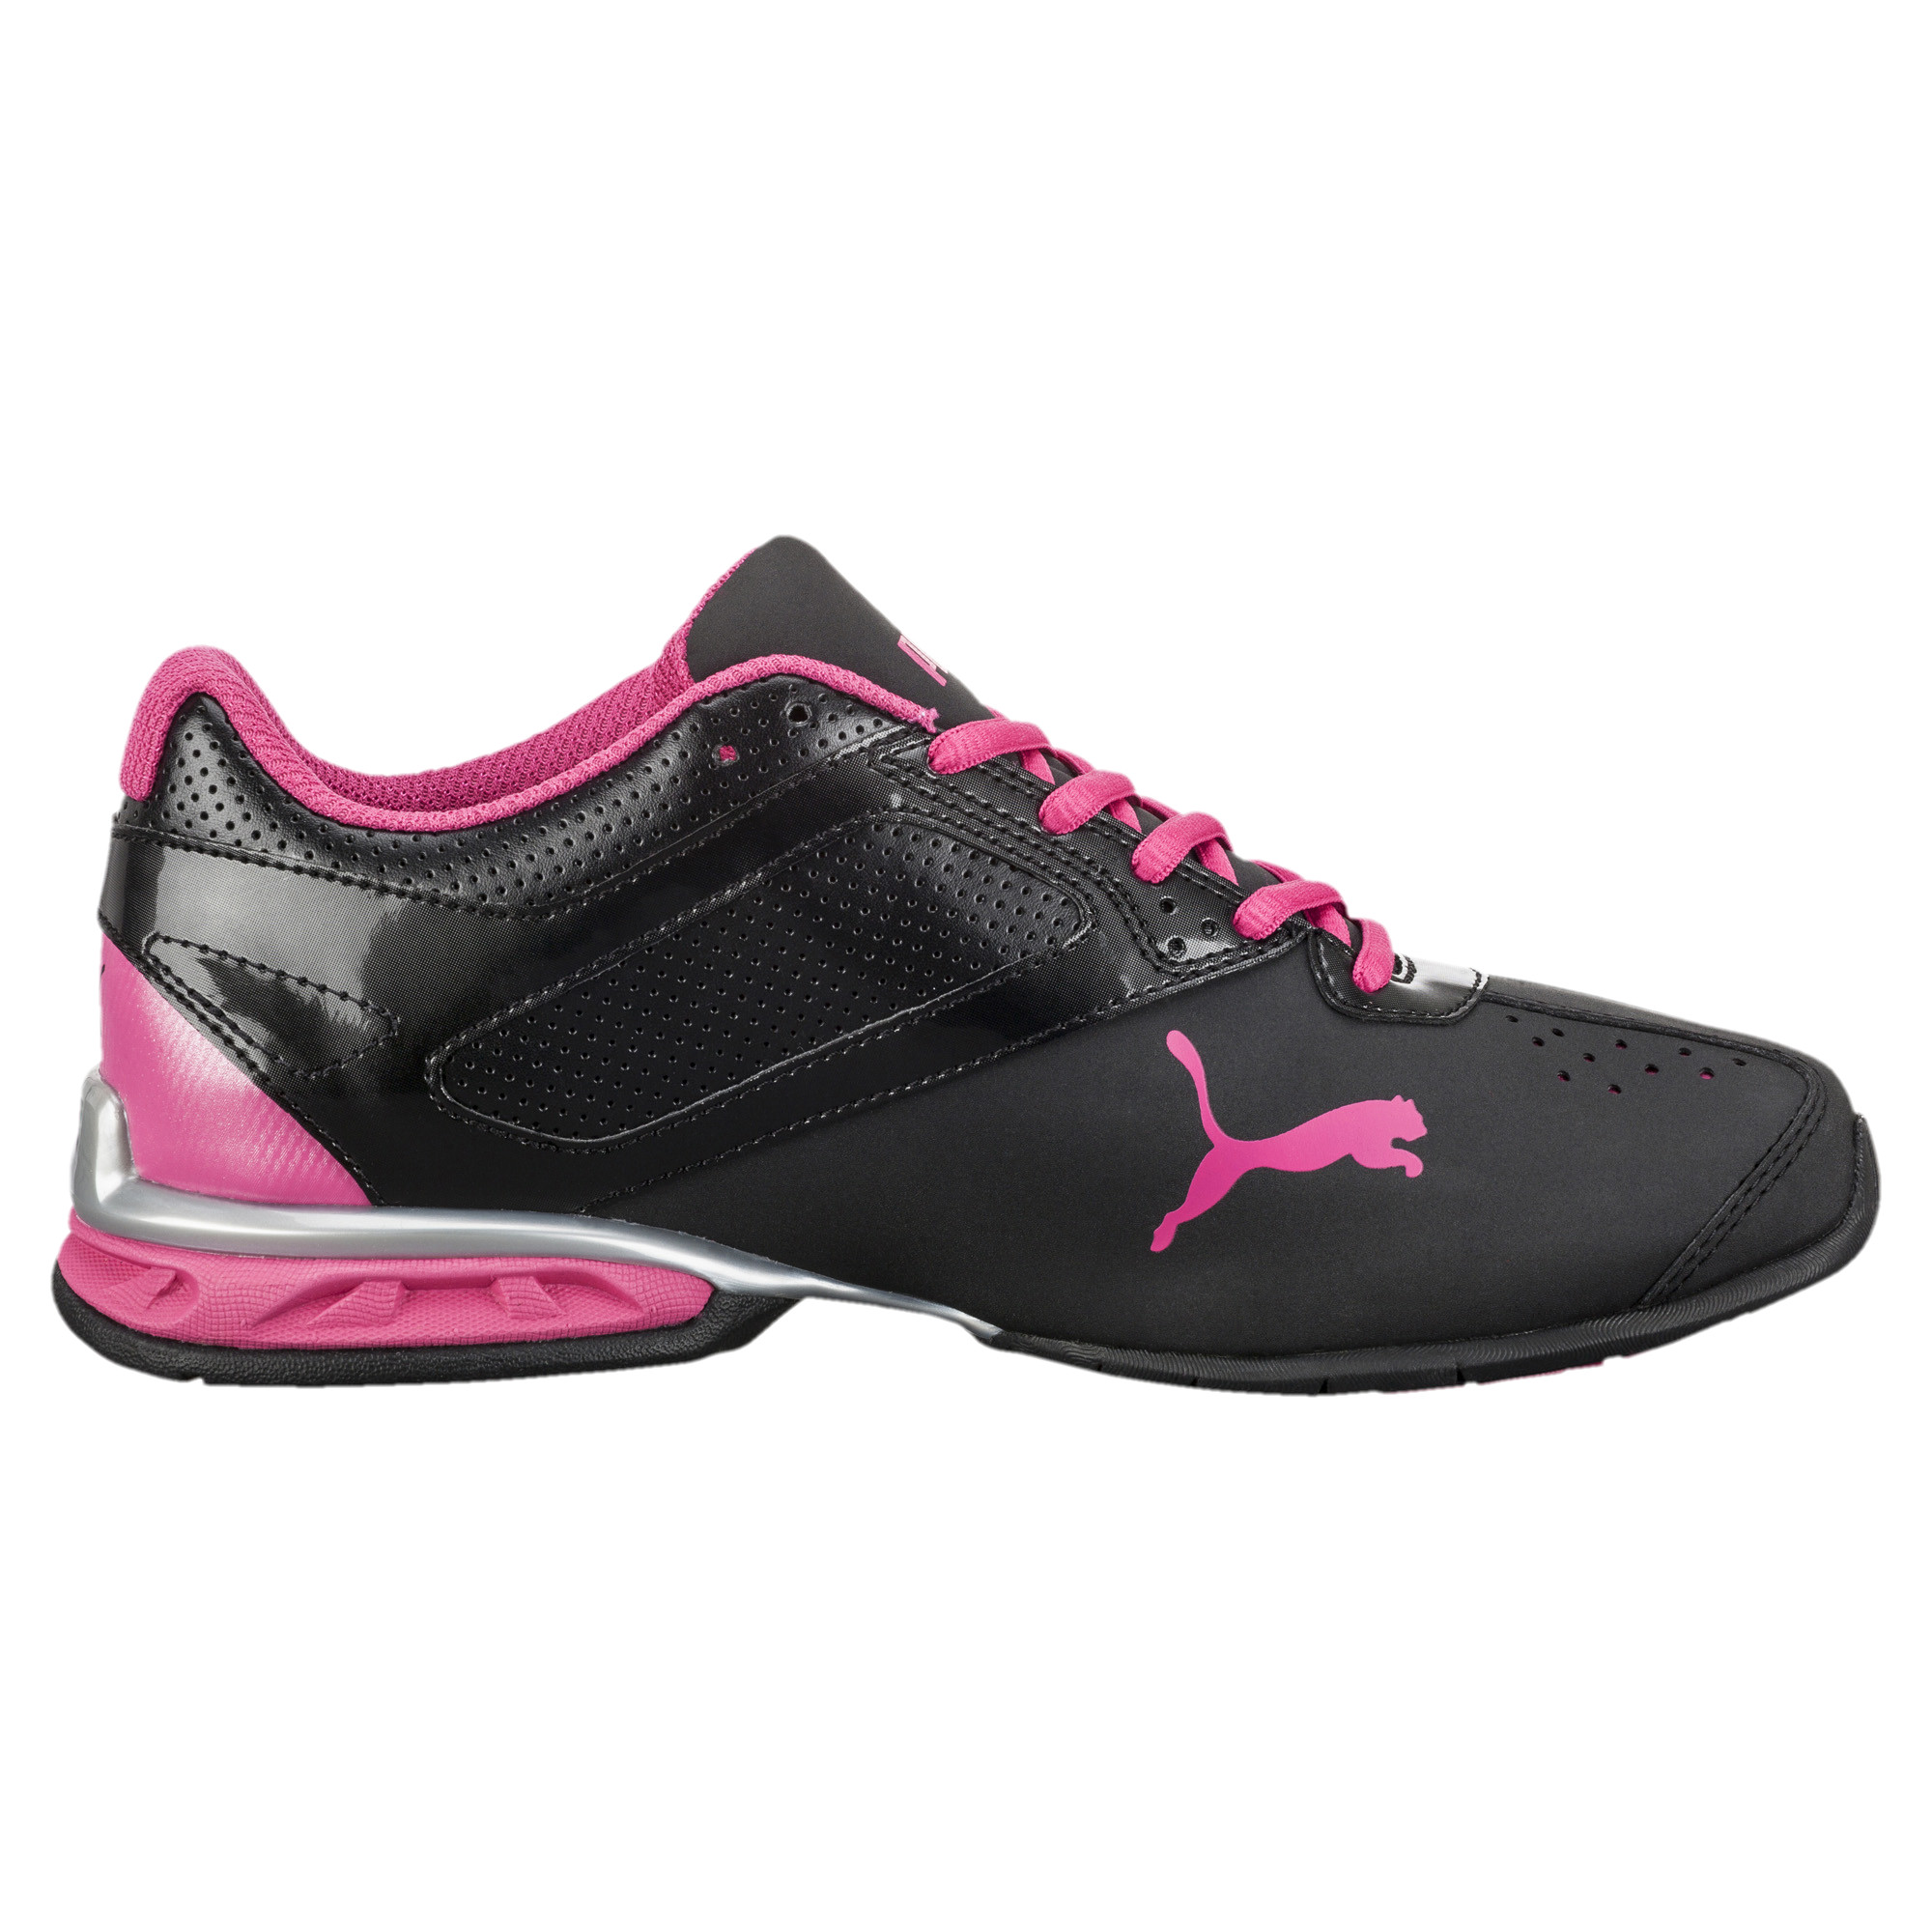 PUMA-Tazon-6-FM-Women-039-s-Sneakers-Women-Shoe-Running thumbnail 5